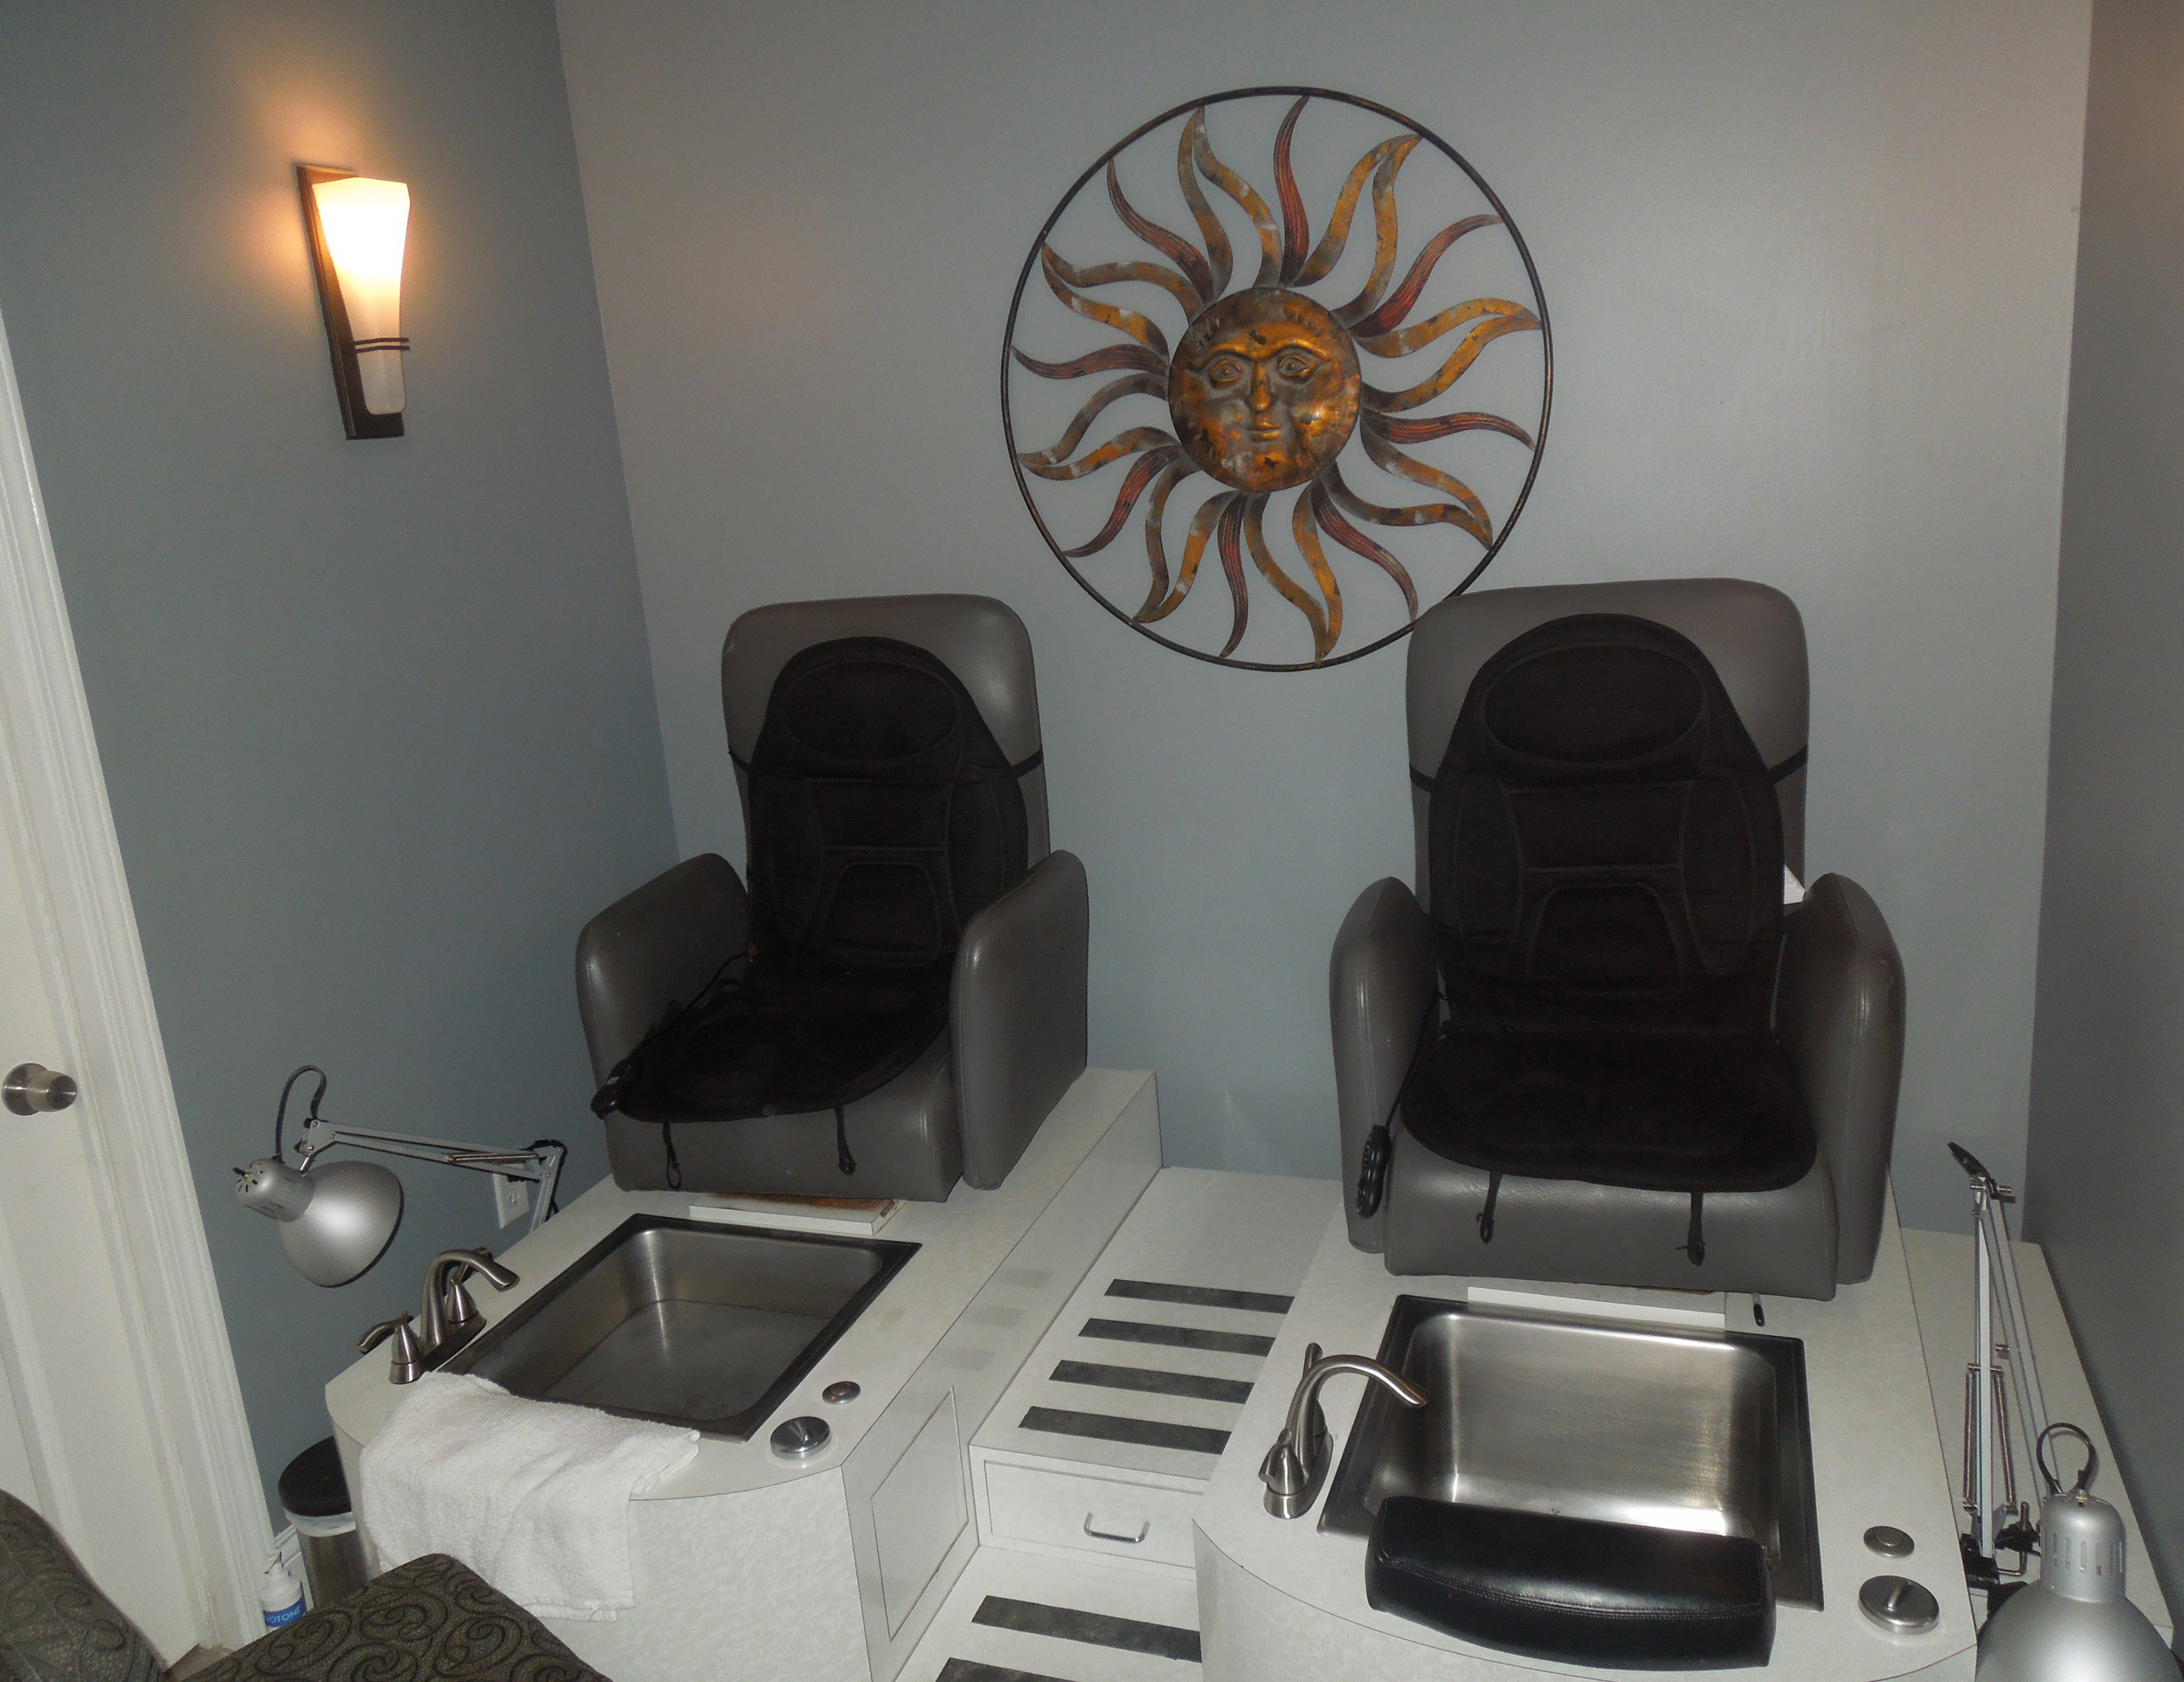 Our closed room pedicure station is here so you can enjoy some much needed quiet.